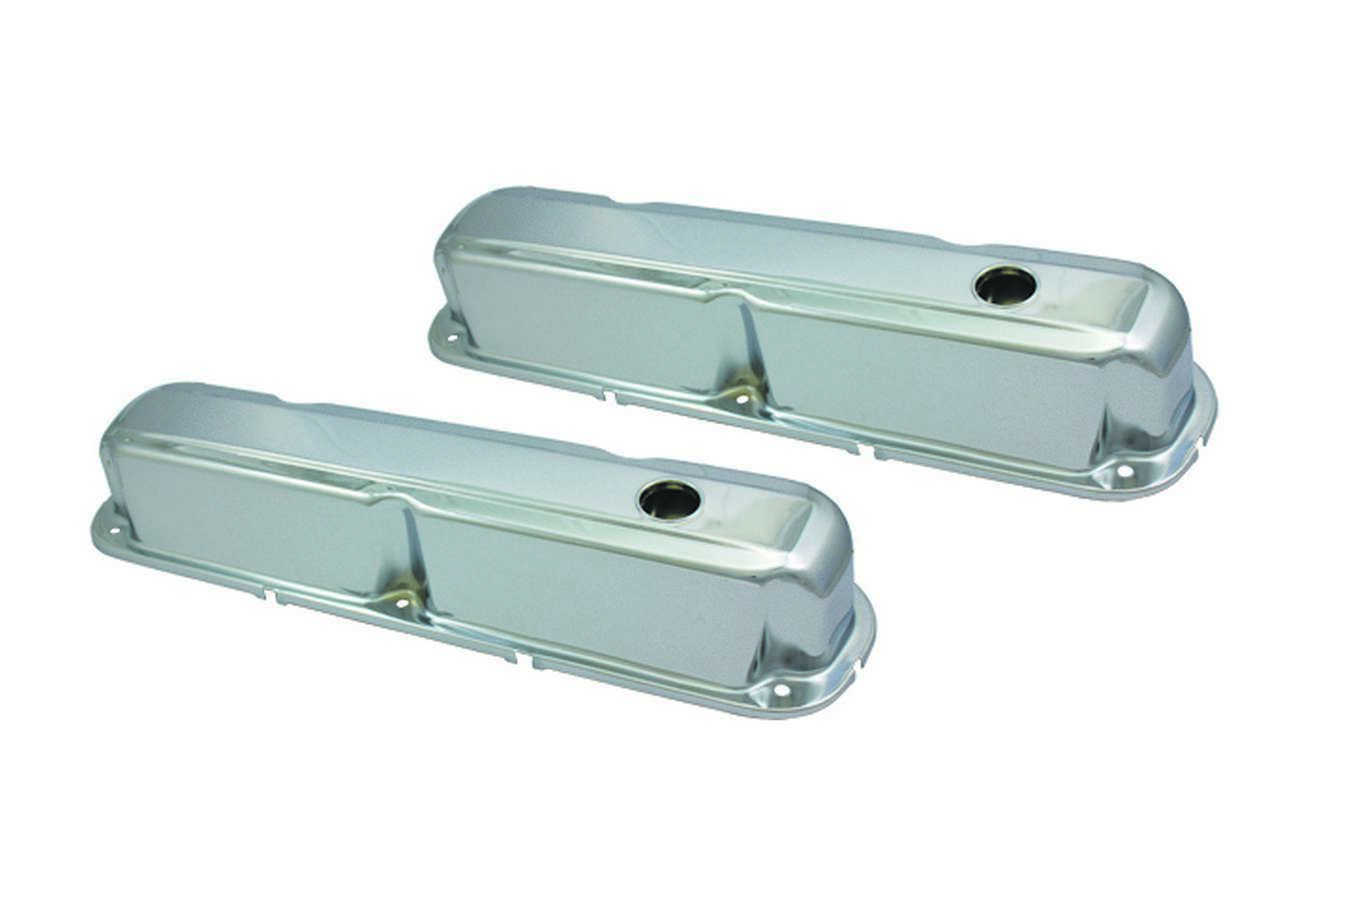 Specialty Products 8330 Valve Cover, Stock Height, Baffled, Breather Holes, Steel, Chrome, Small Block Mopar, Pair